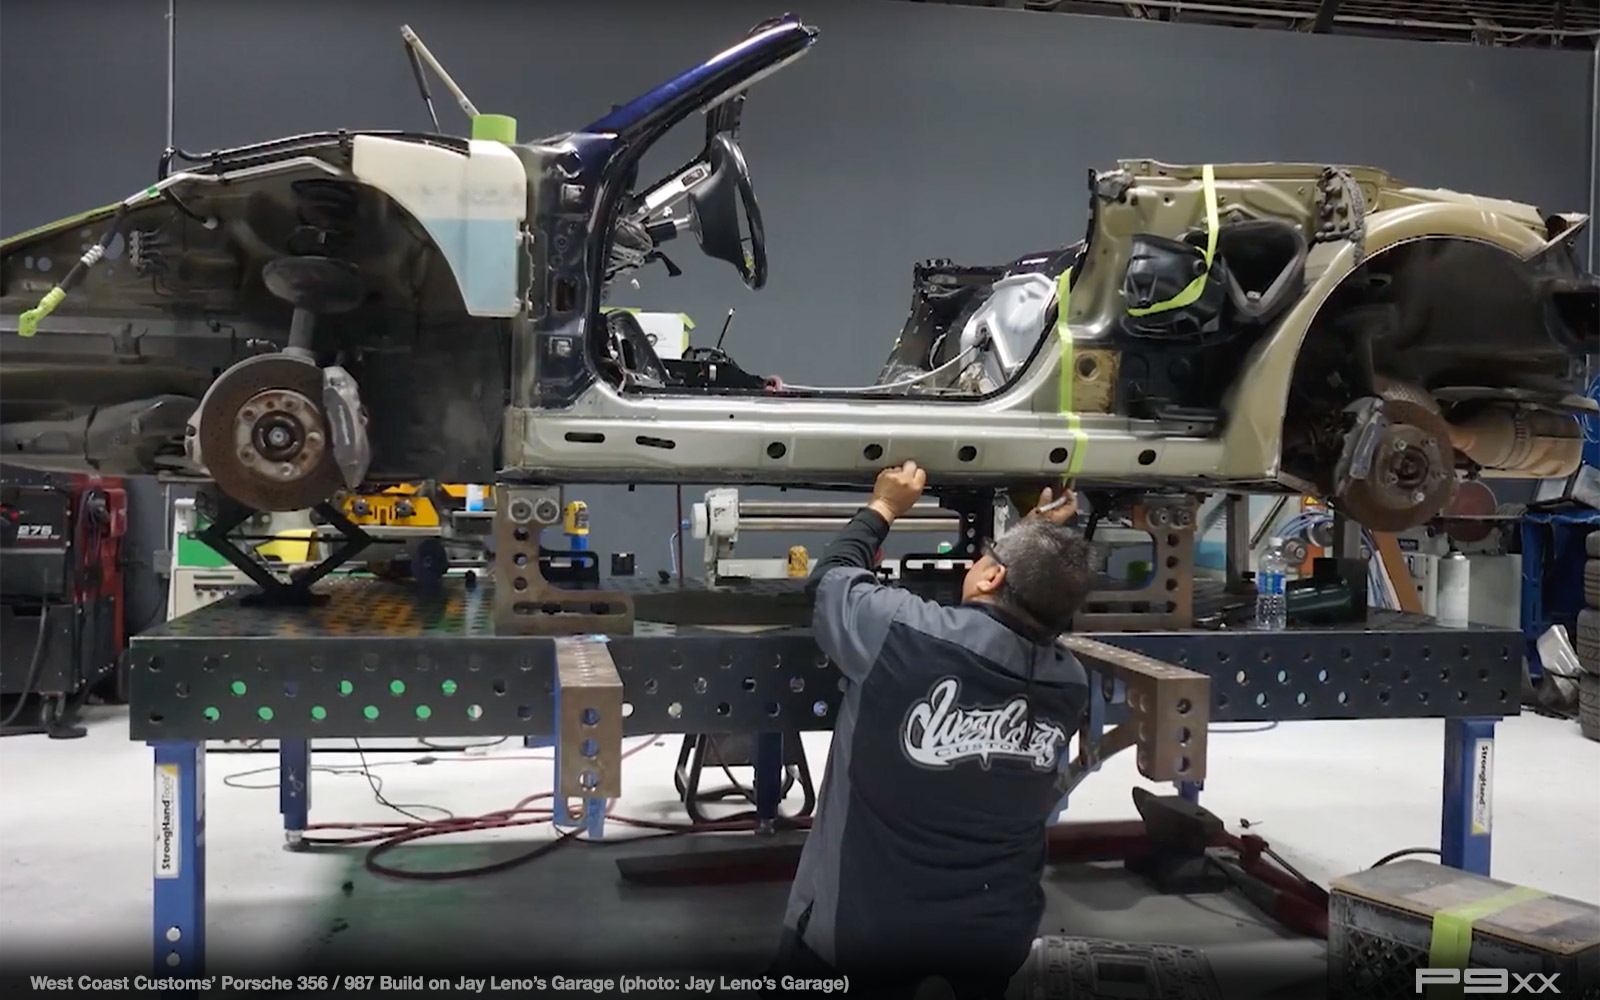 10 Things We Learned About West Coast Customs 356 987 Build P9xx